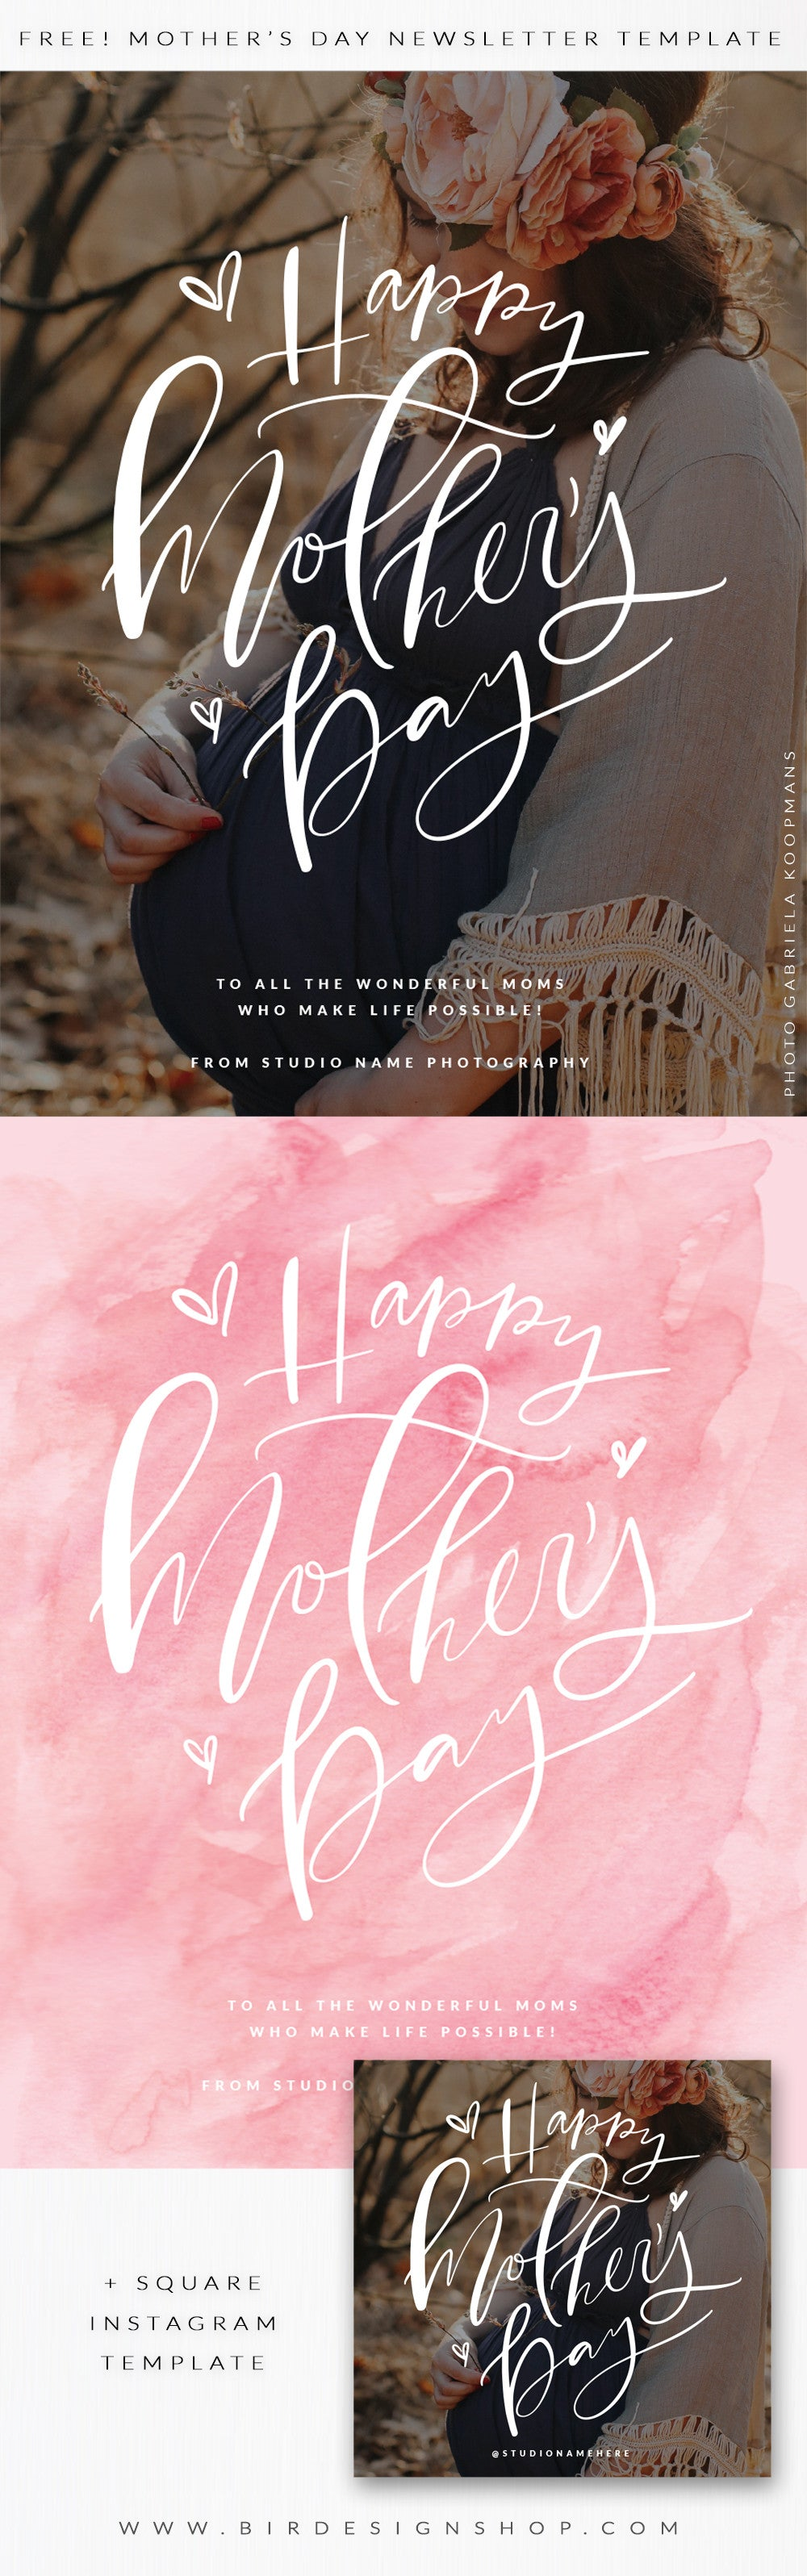 FREE templates - Mother's Day marketing newsletter